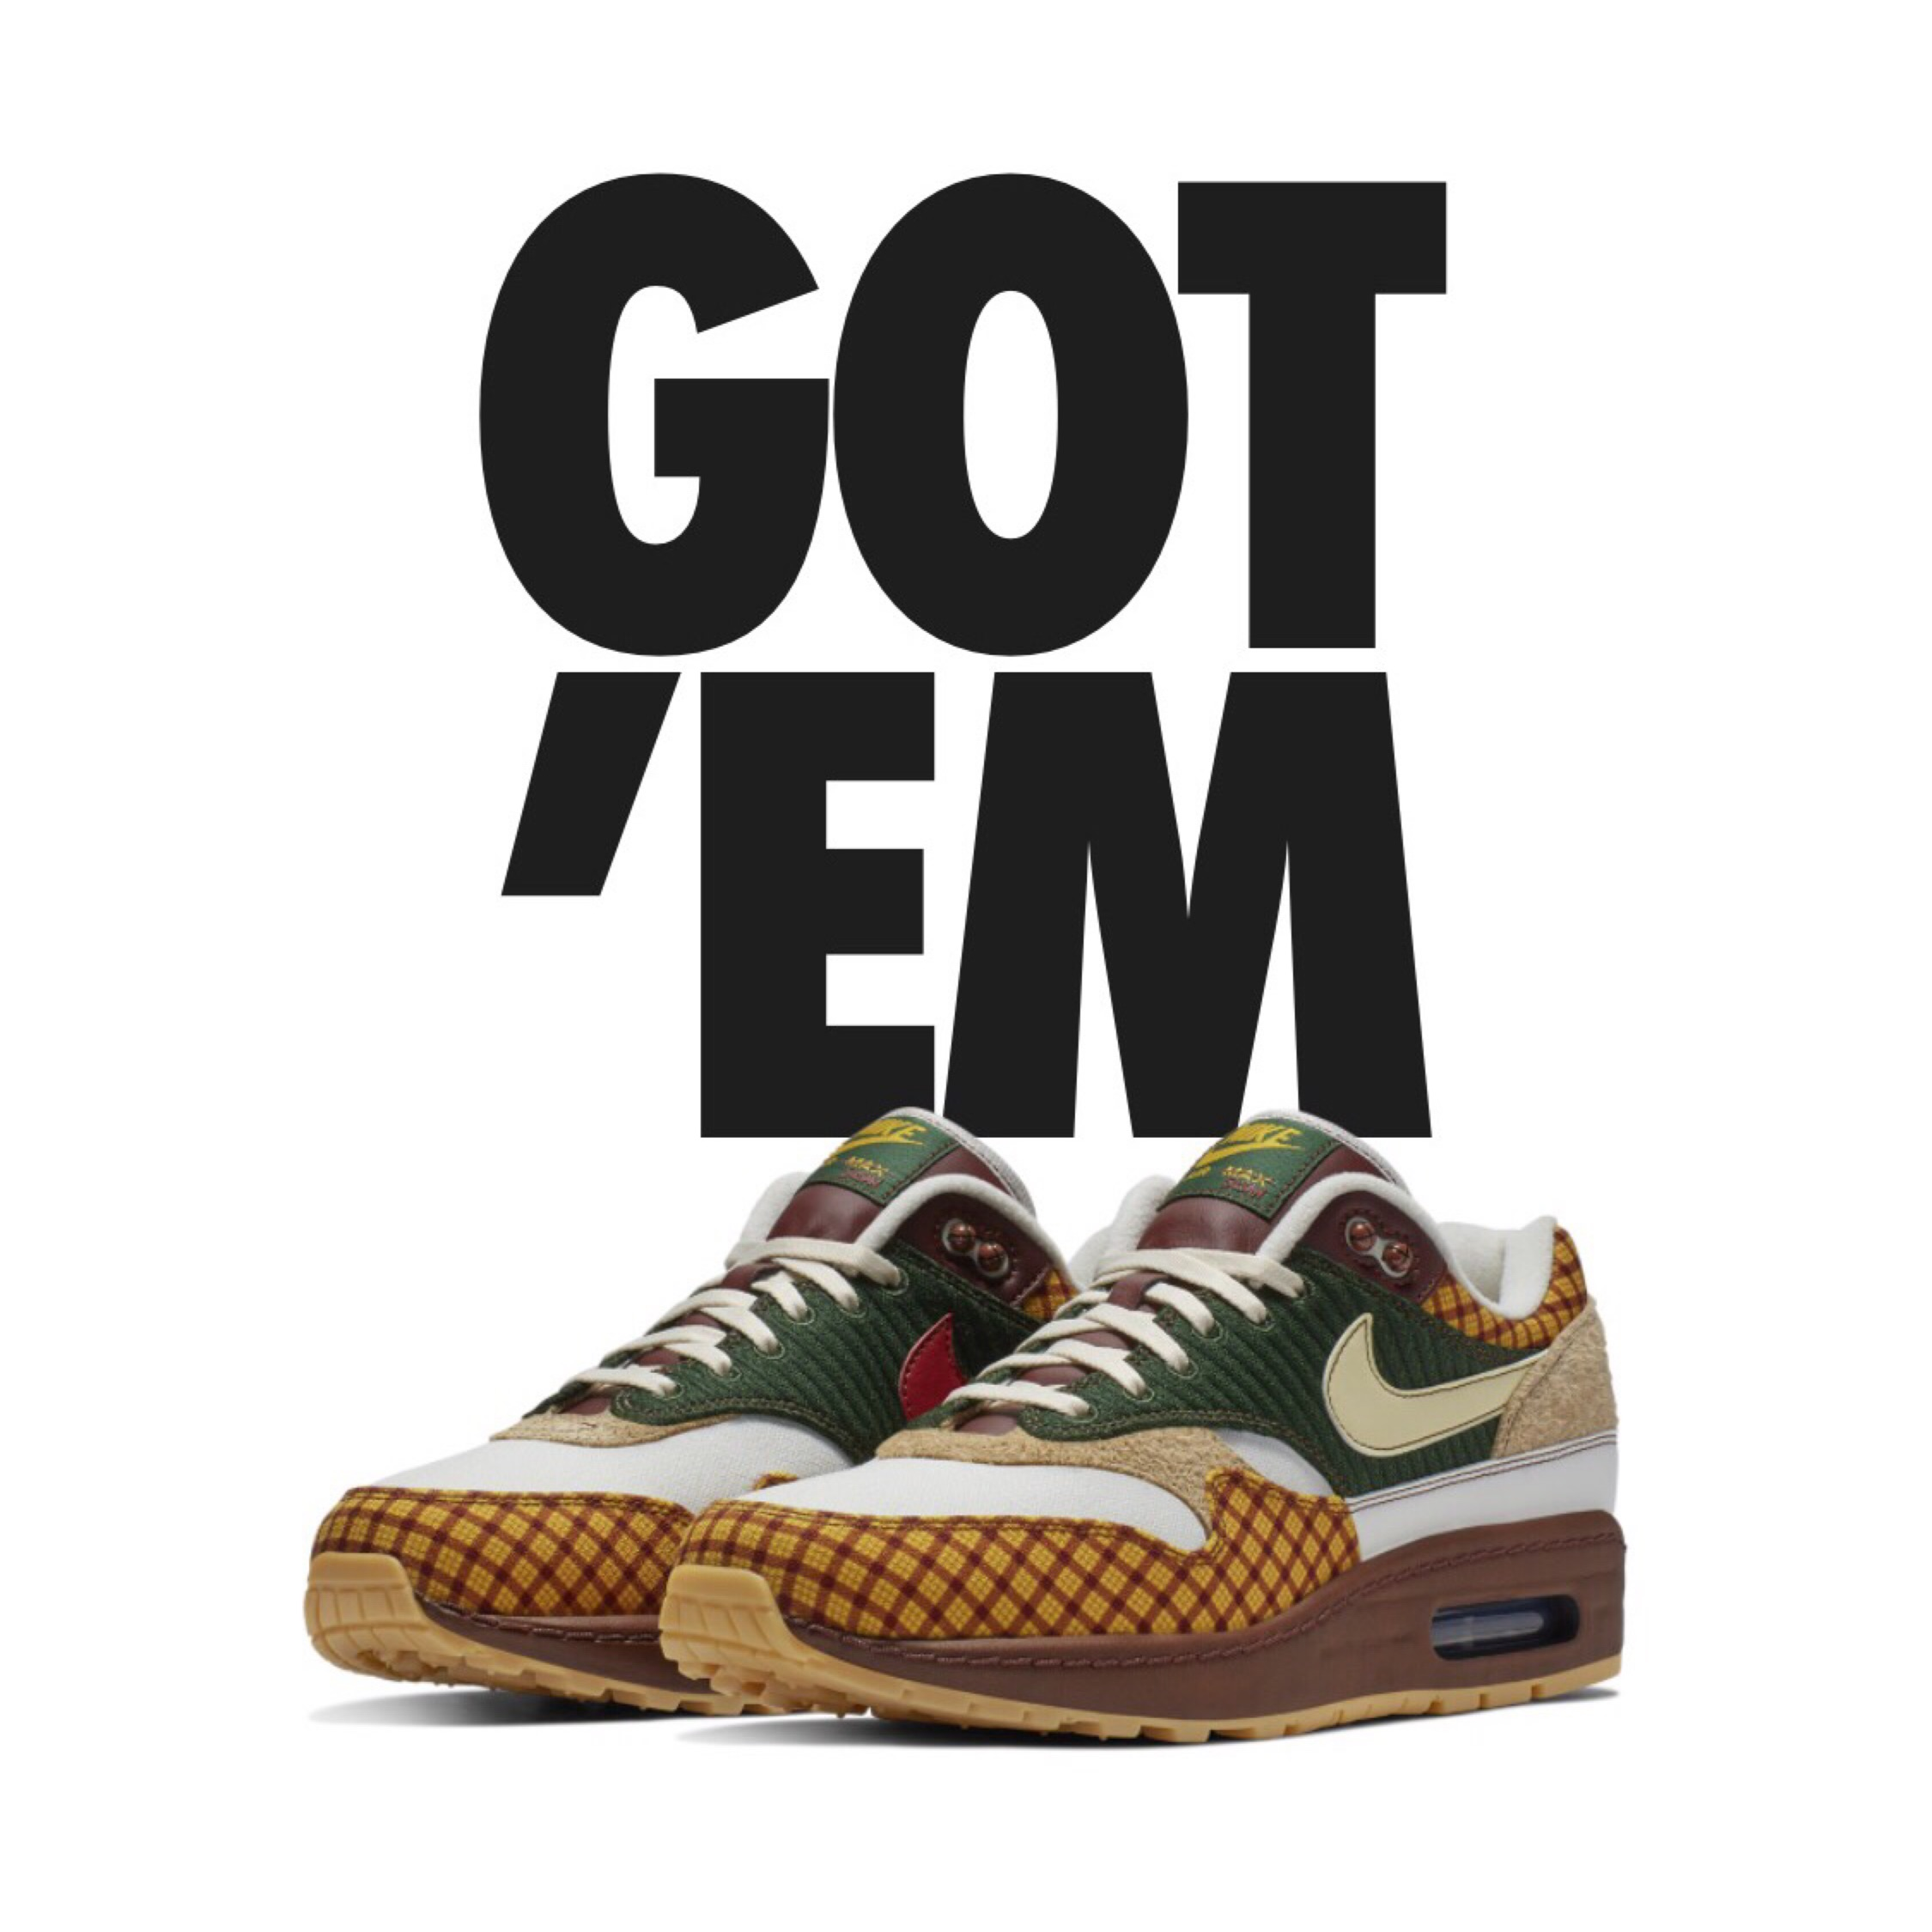 the latest 9c14b 023d9 Nike Air Max 1 Susan Missing Link